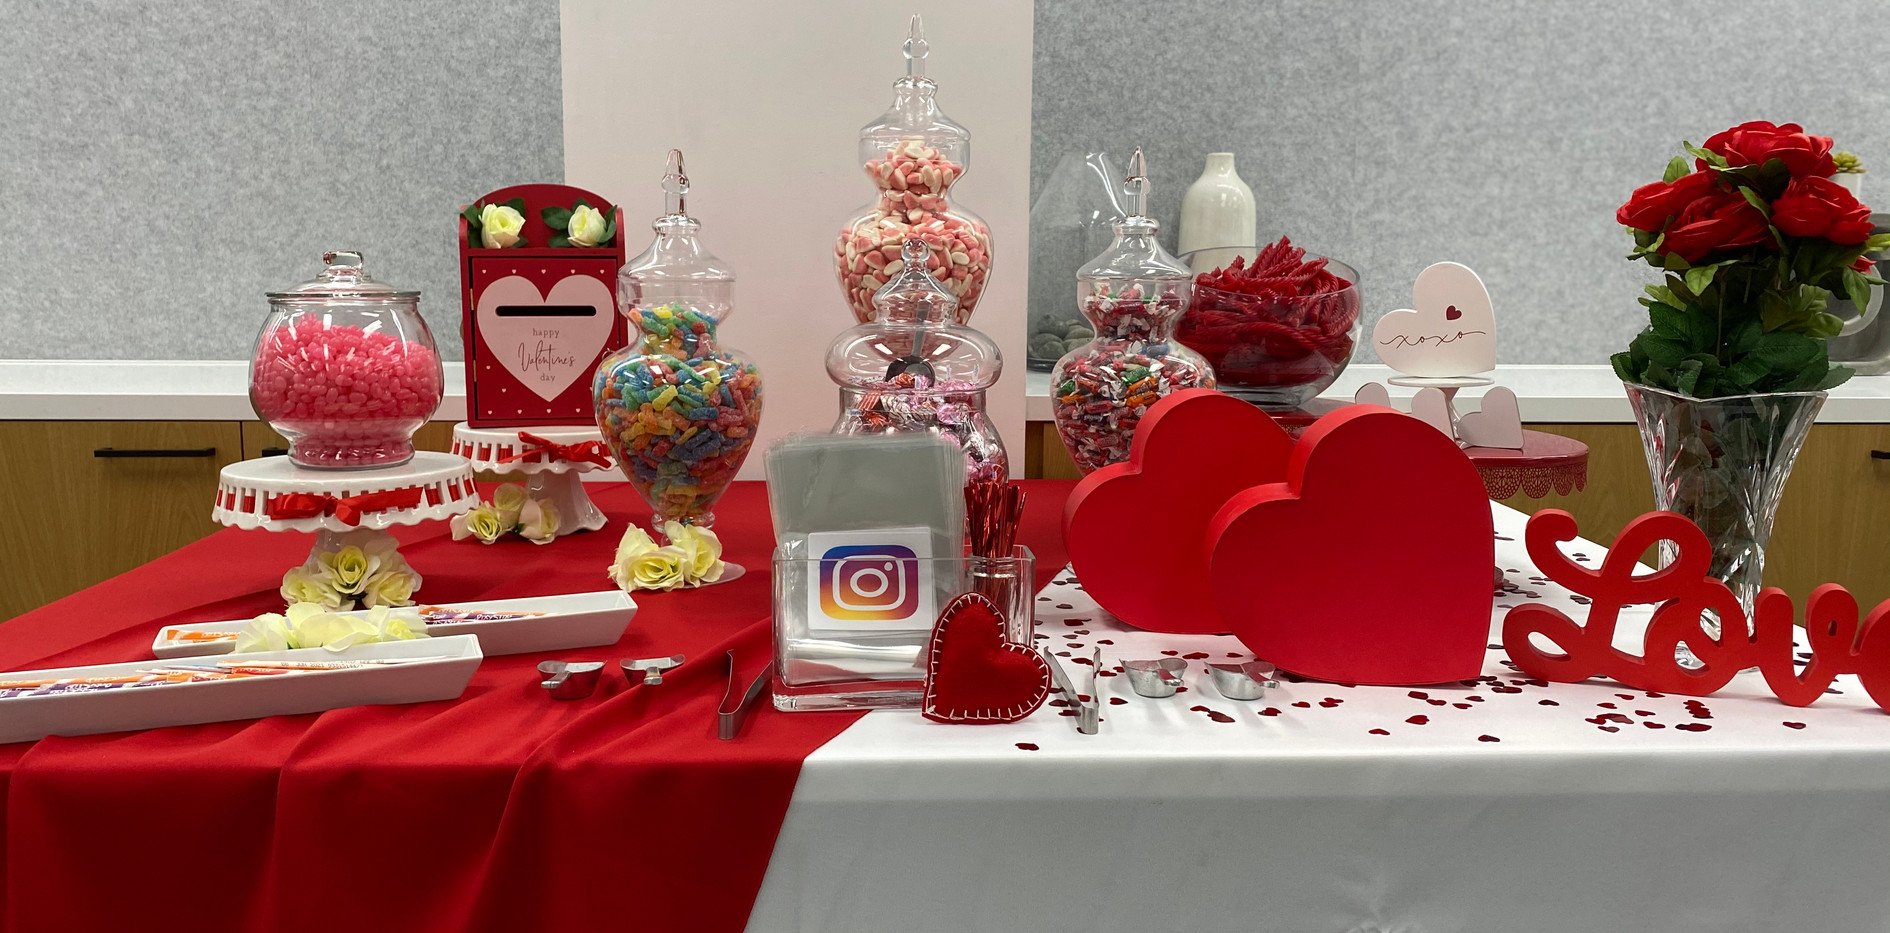 Valentine's Candy Buffet for Instagram